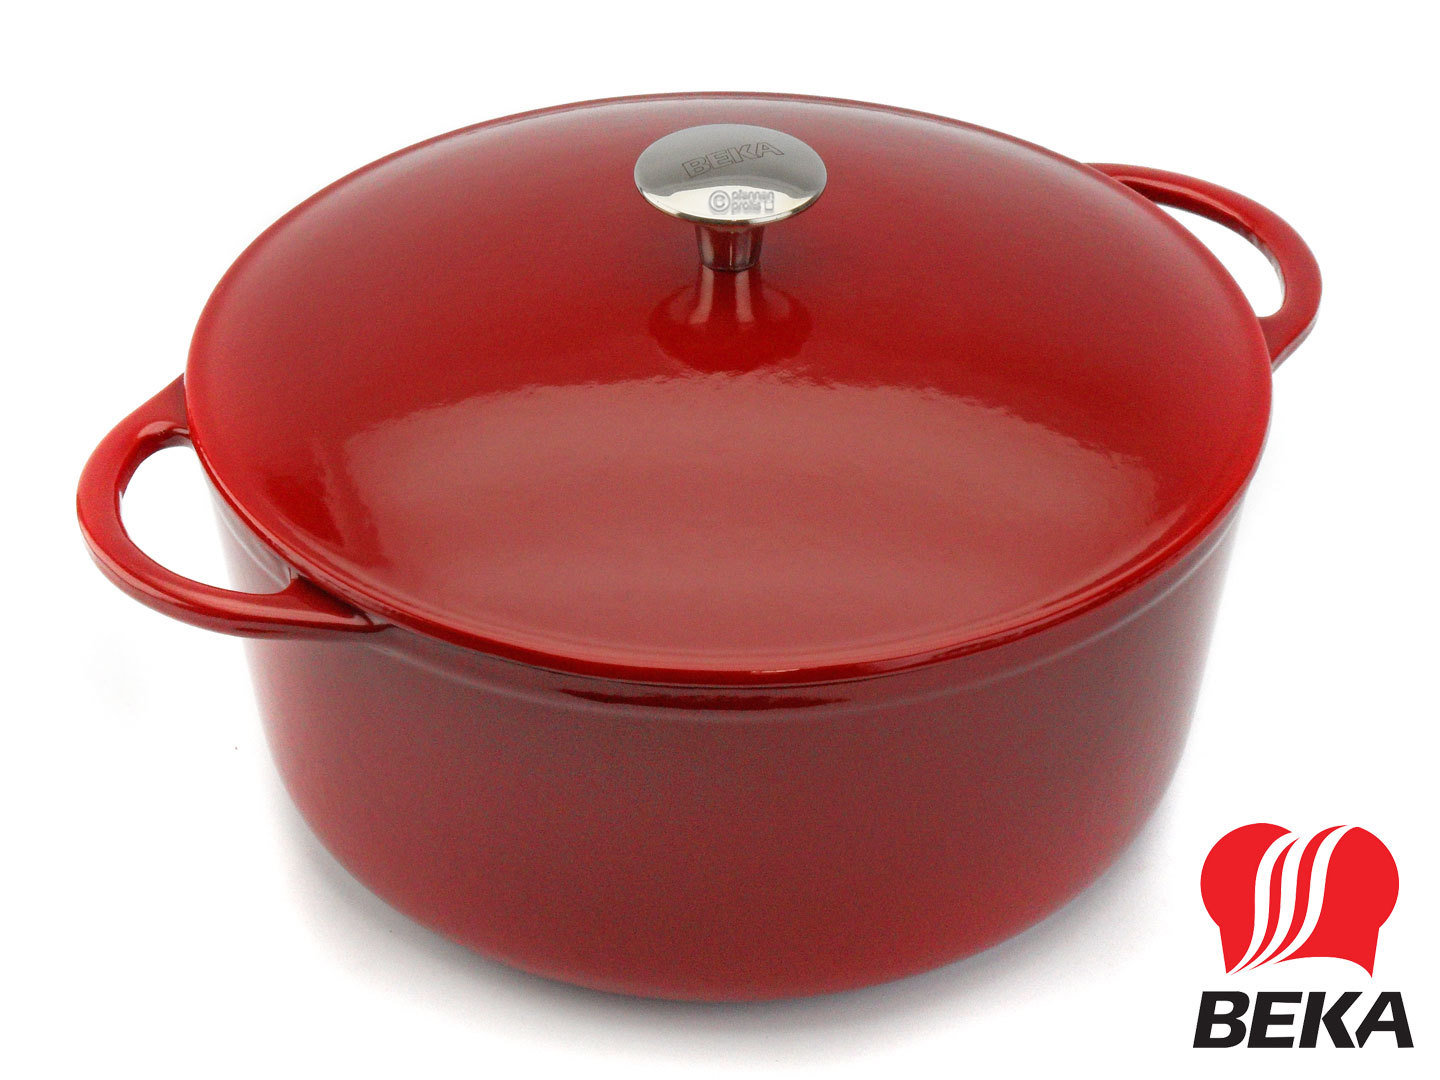 BEKA round cast iron casserole AROME 27 cm with lid enameled red cream